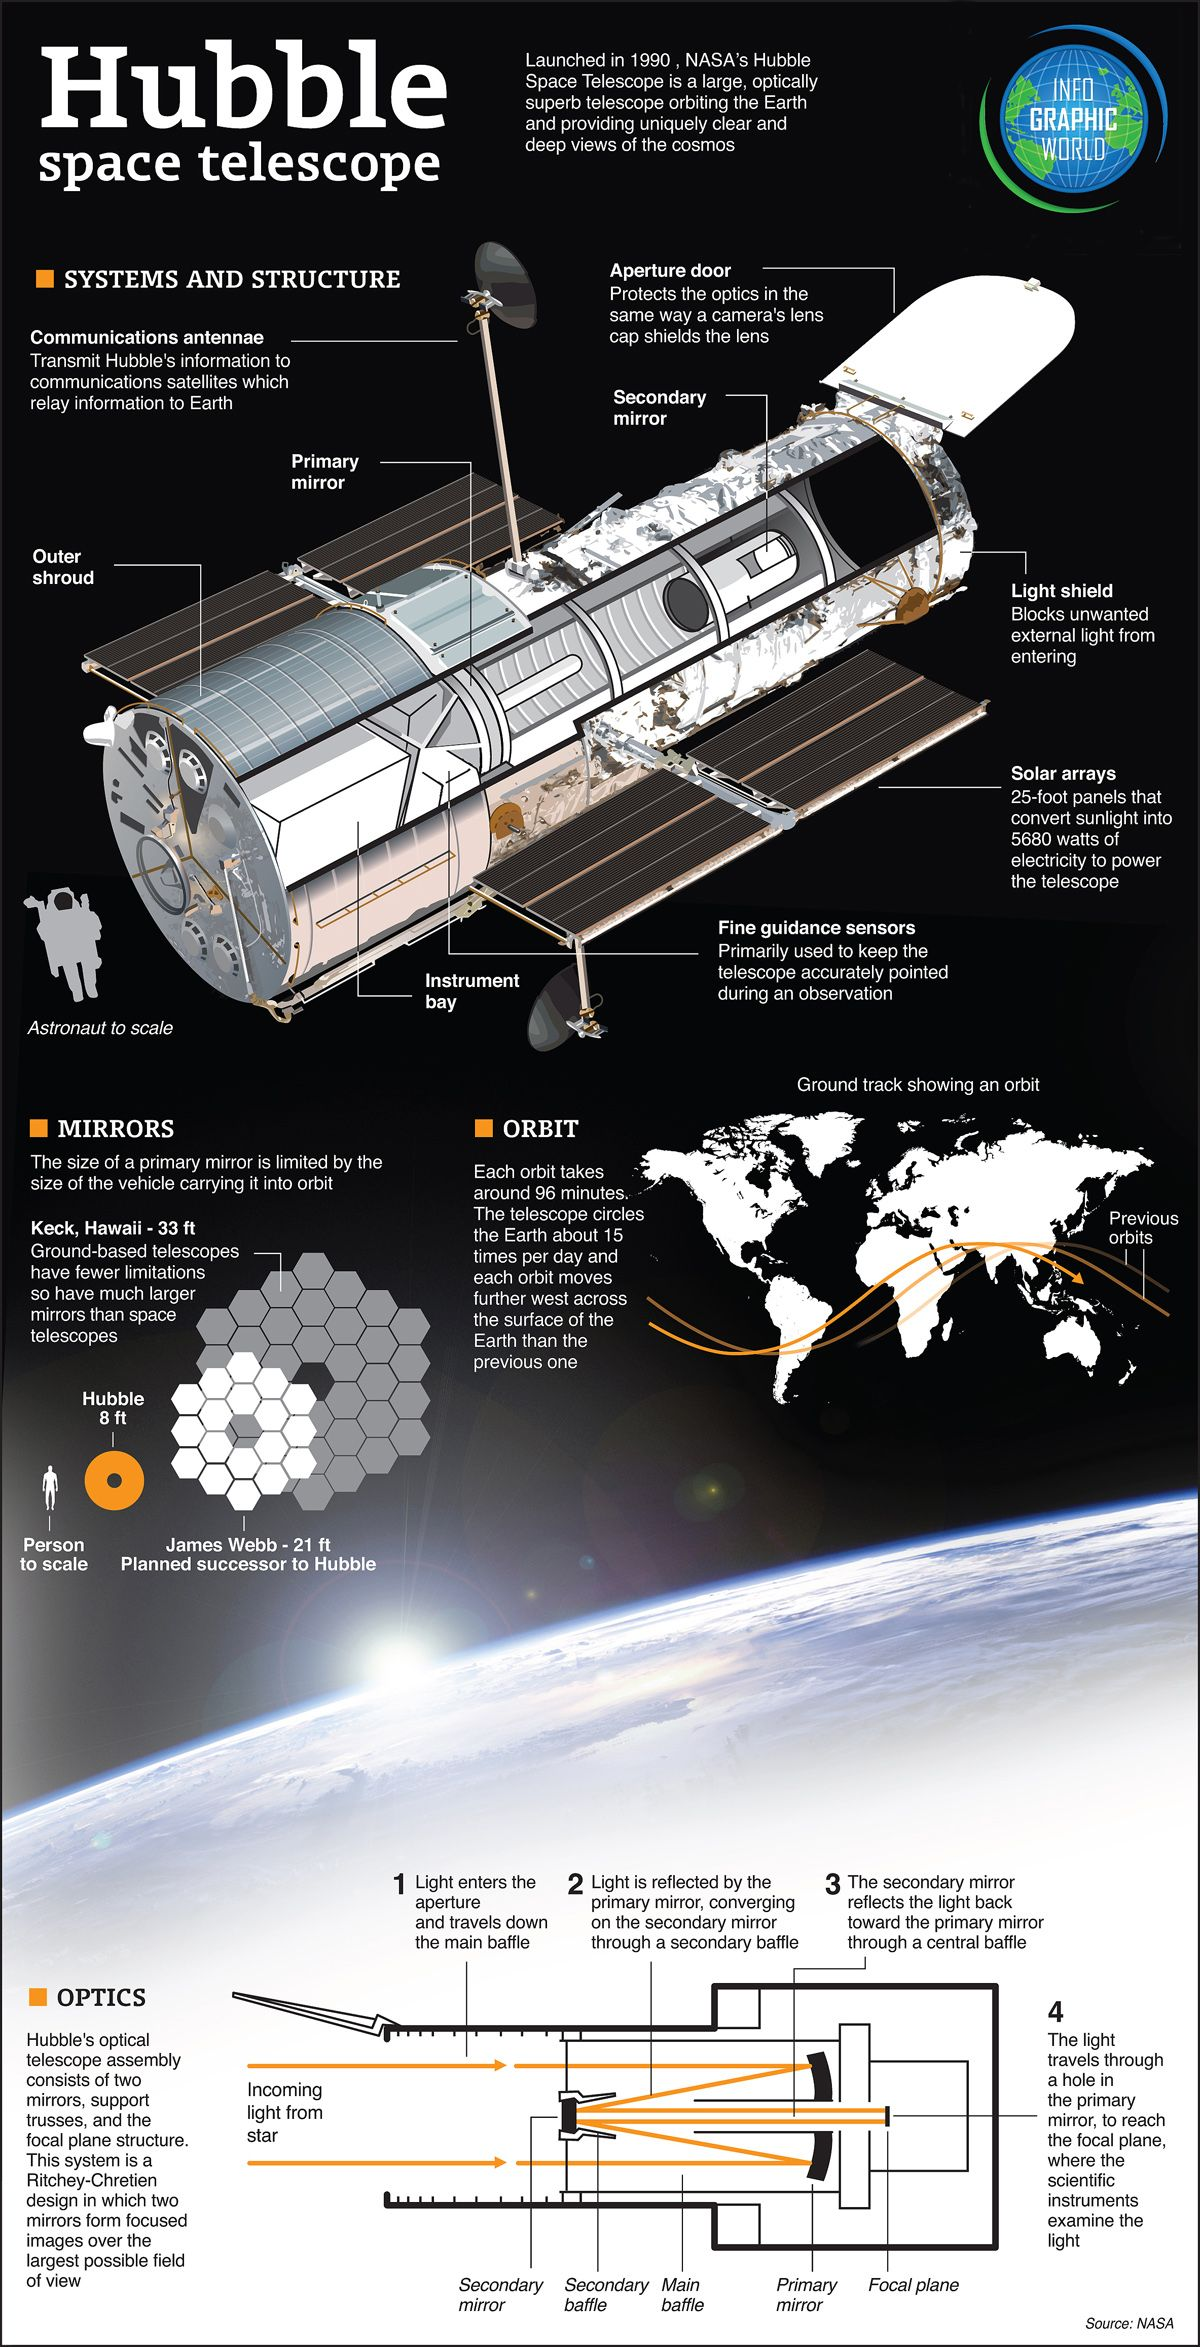 See This Diagram For How The Hubble Works